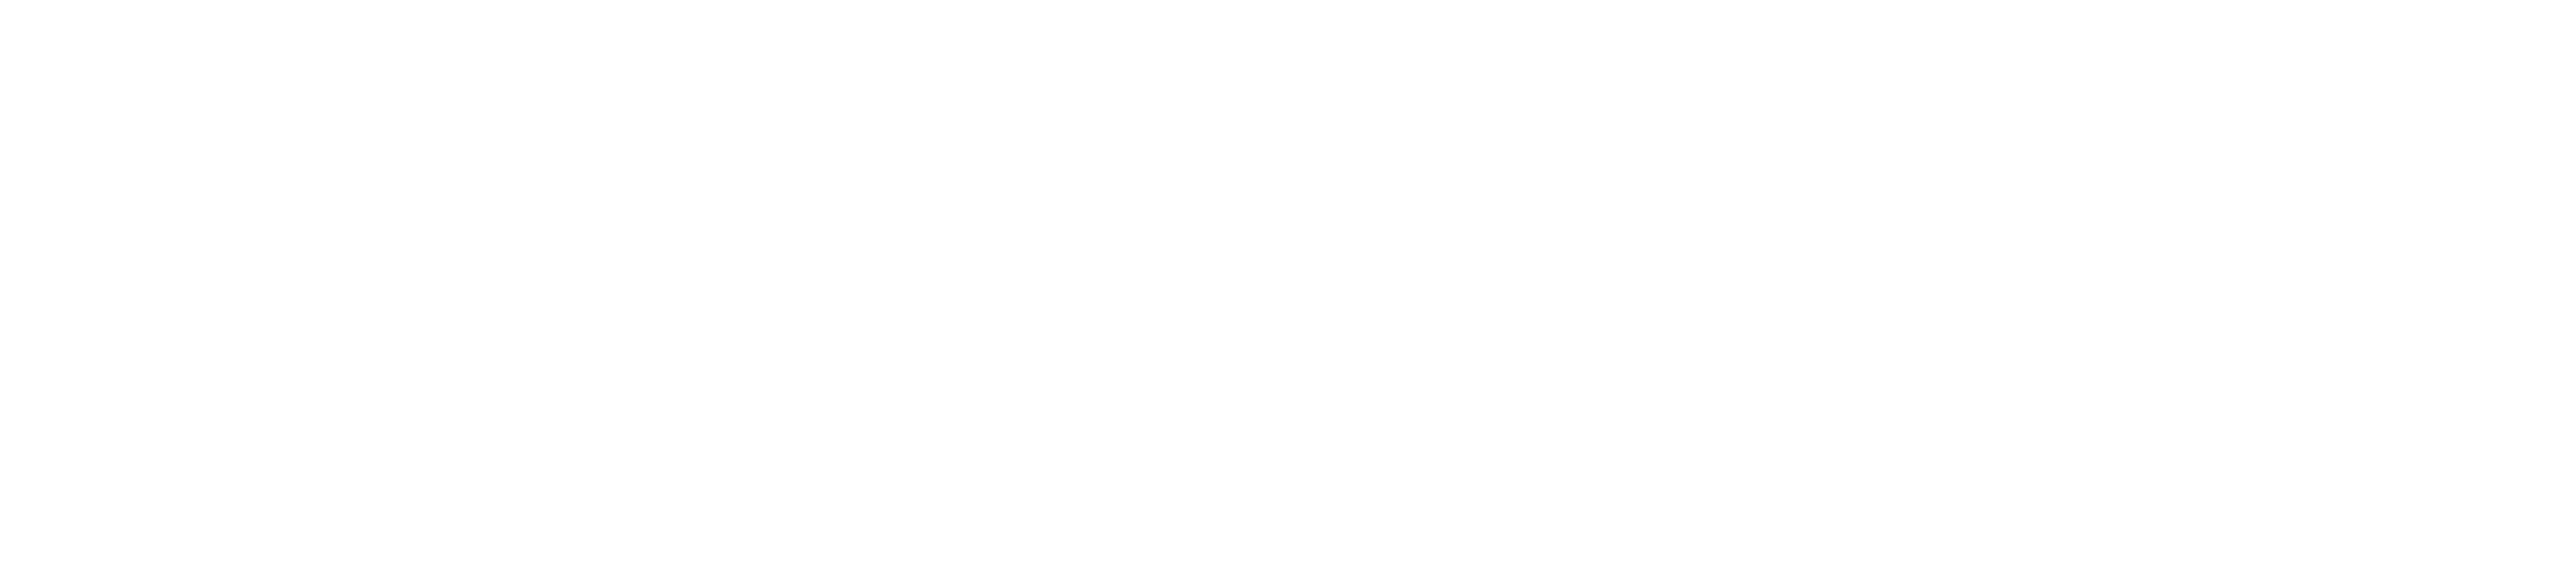 Pegasus logo Leaders with website caps